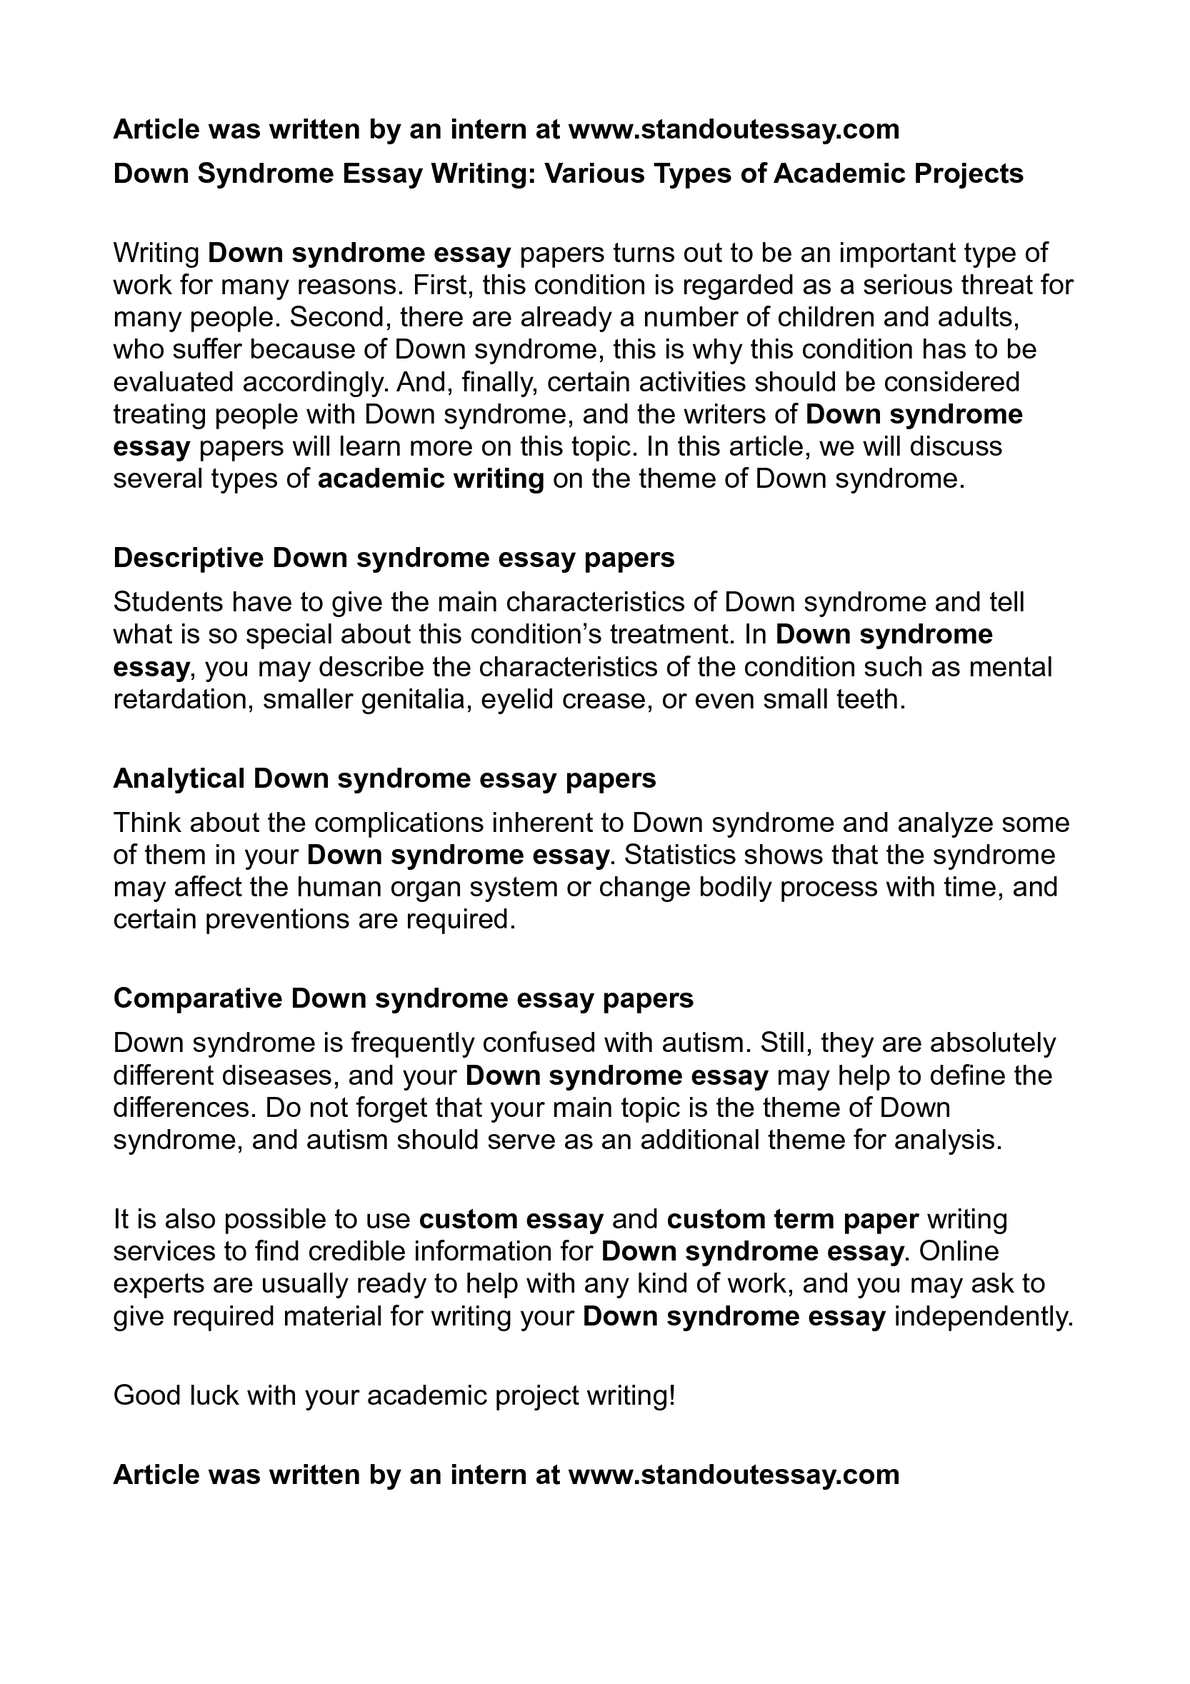 calam atilde copy o down syndrome essay writing various types of academic calamatildecopyo down syndrome essay writing various types of academic projects